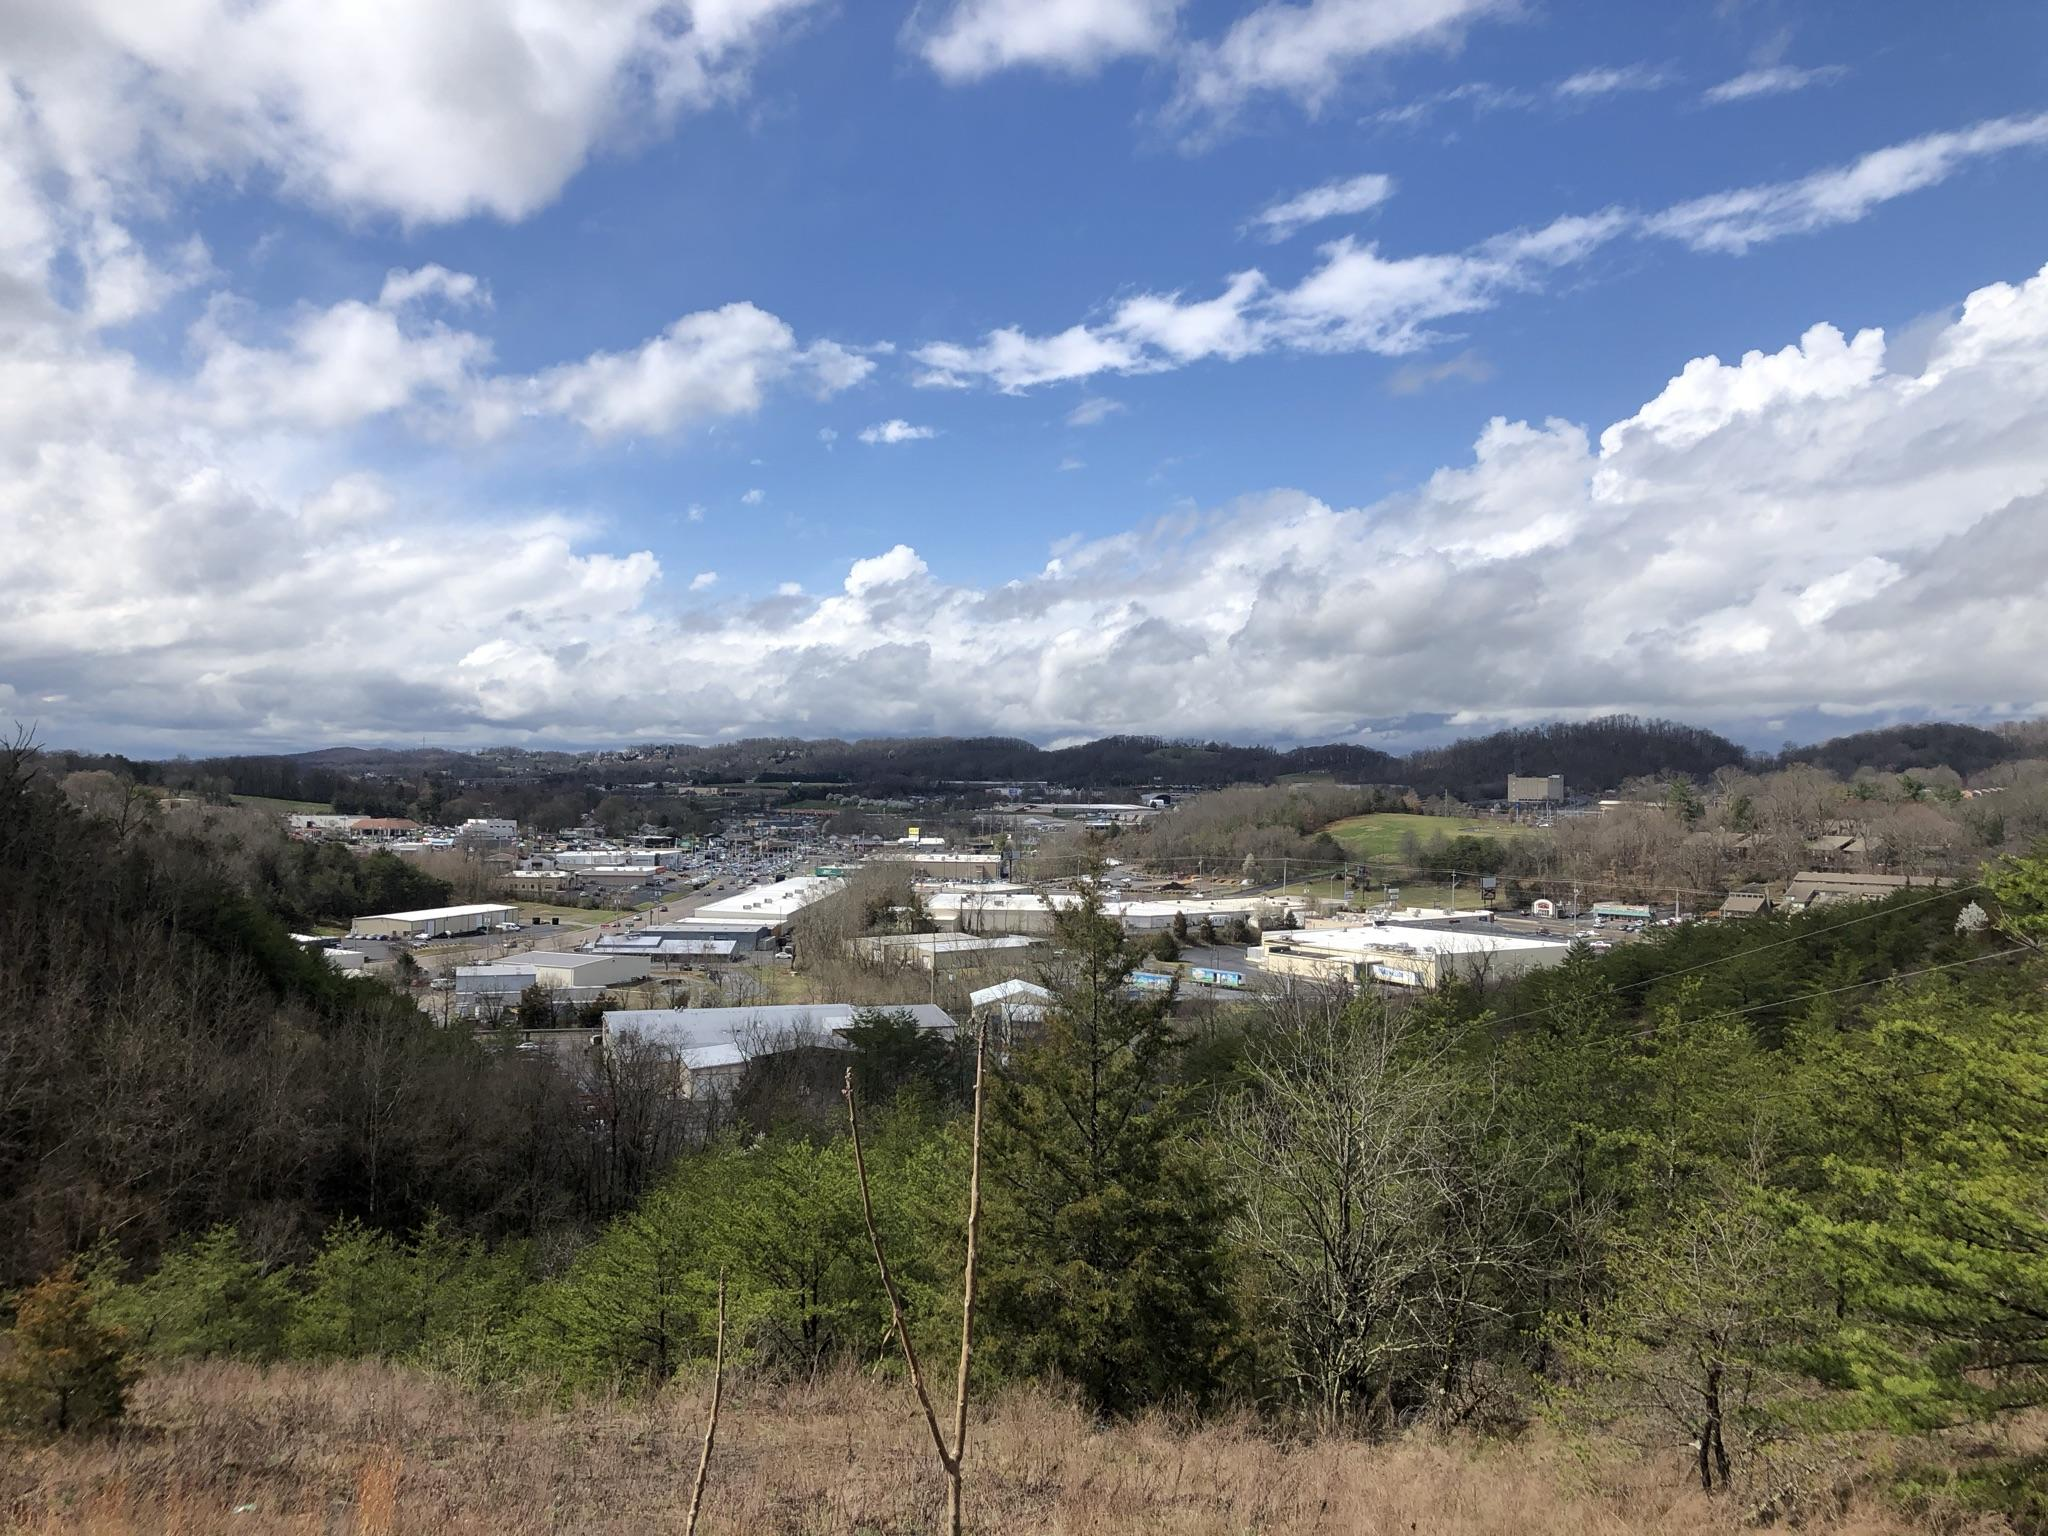 Tbd Creekmore Dr, Johnson City, Tennessee 37601, ,Lots And Land,For Sale,Tbd Creekmore Dr,9920540